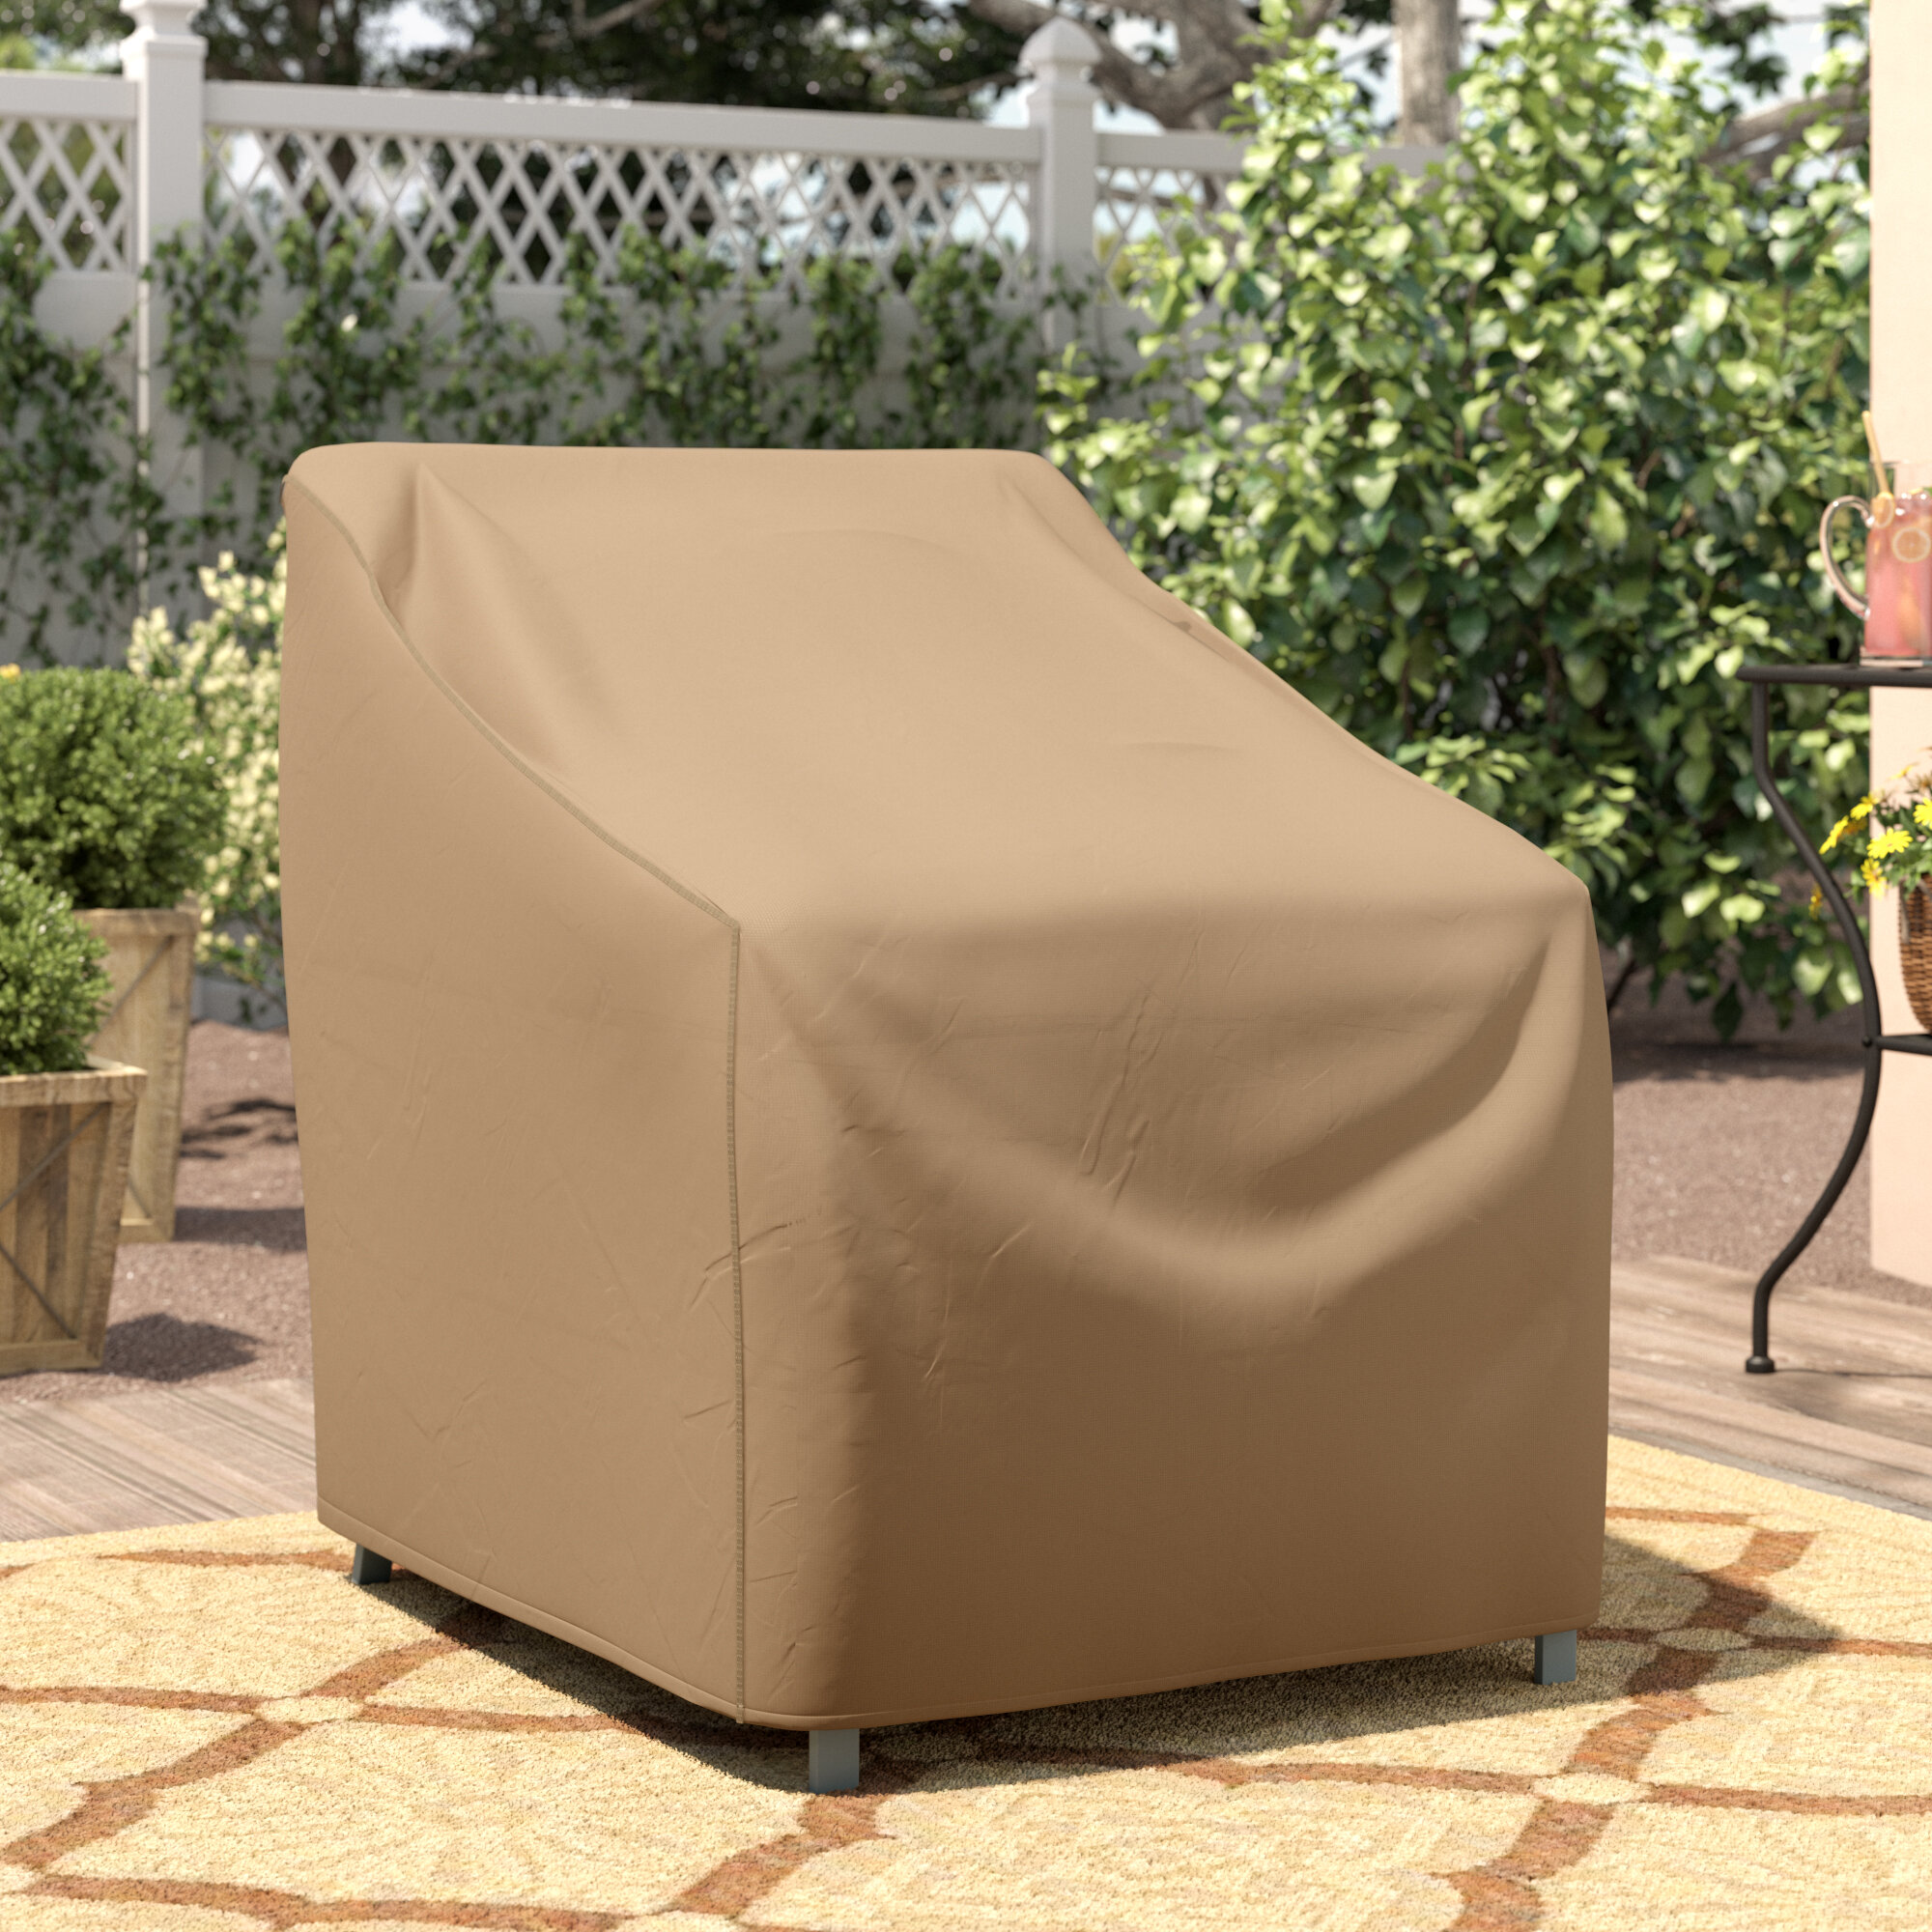 Wayfair Basics Water Resistant Patio Chair Cover Reviews Wayfair